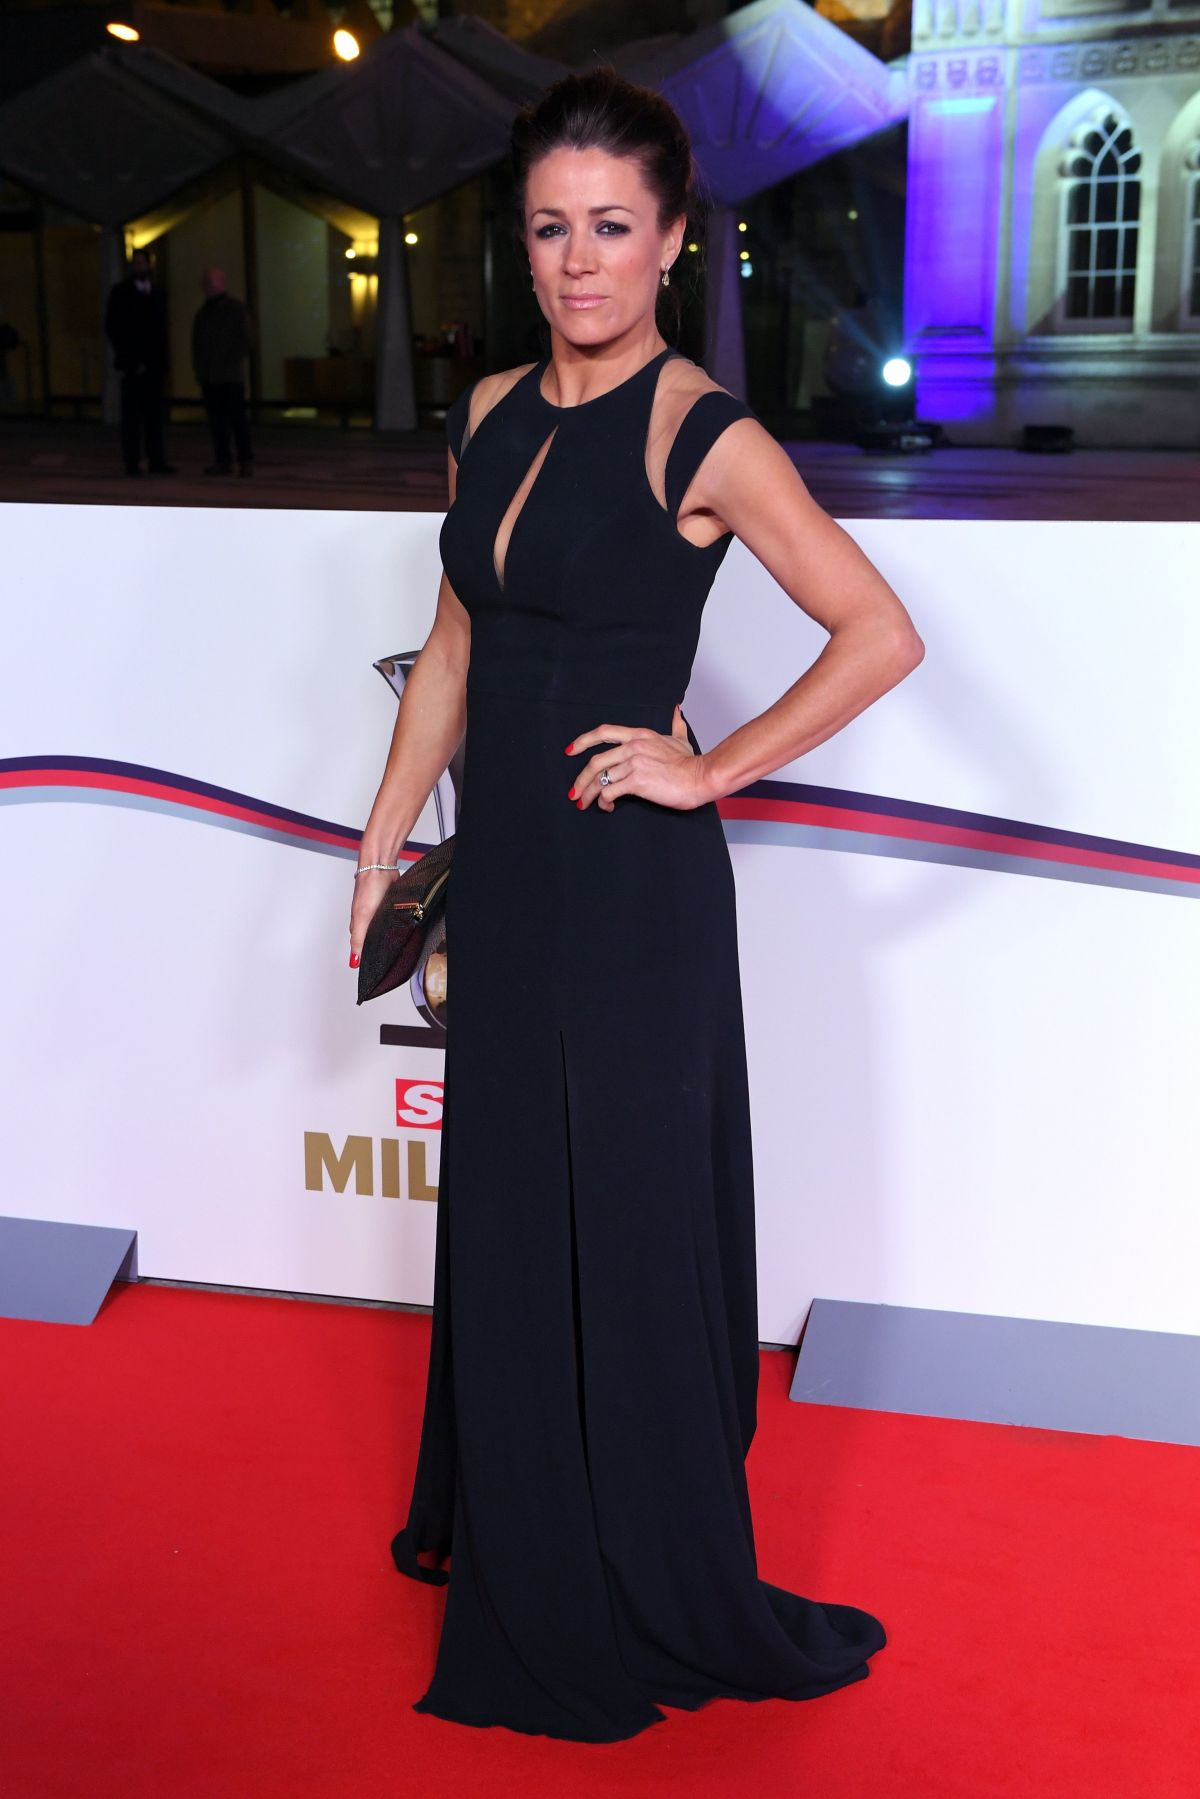 NATALIE PINKHAM at The Sun Military Awards in London 12/14/2016